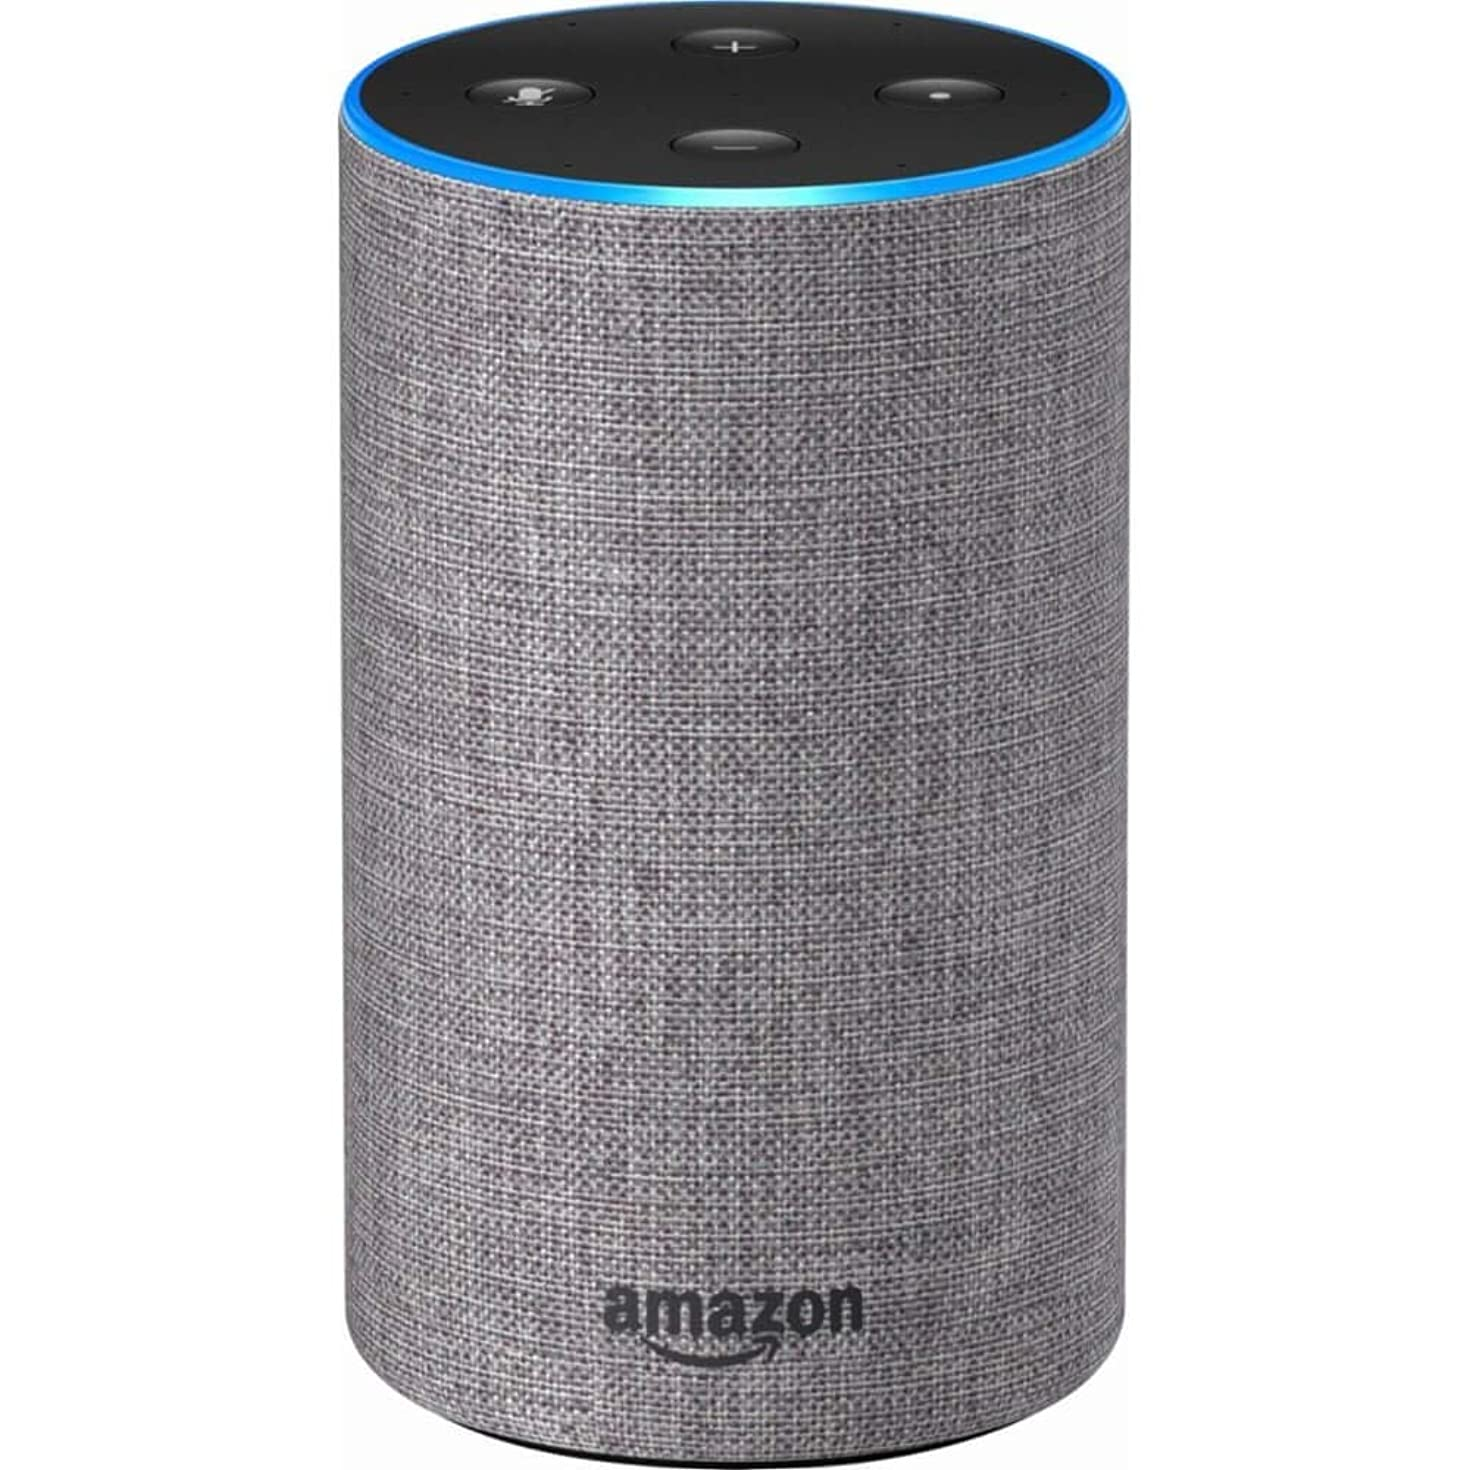 Echo (2nd Generation) - Smart speaker with Alexa - Heather Gray Fabric